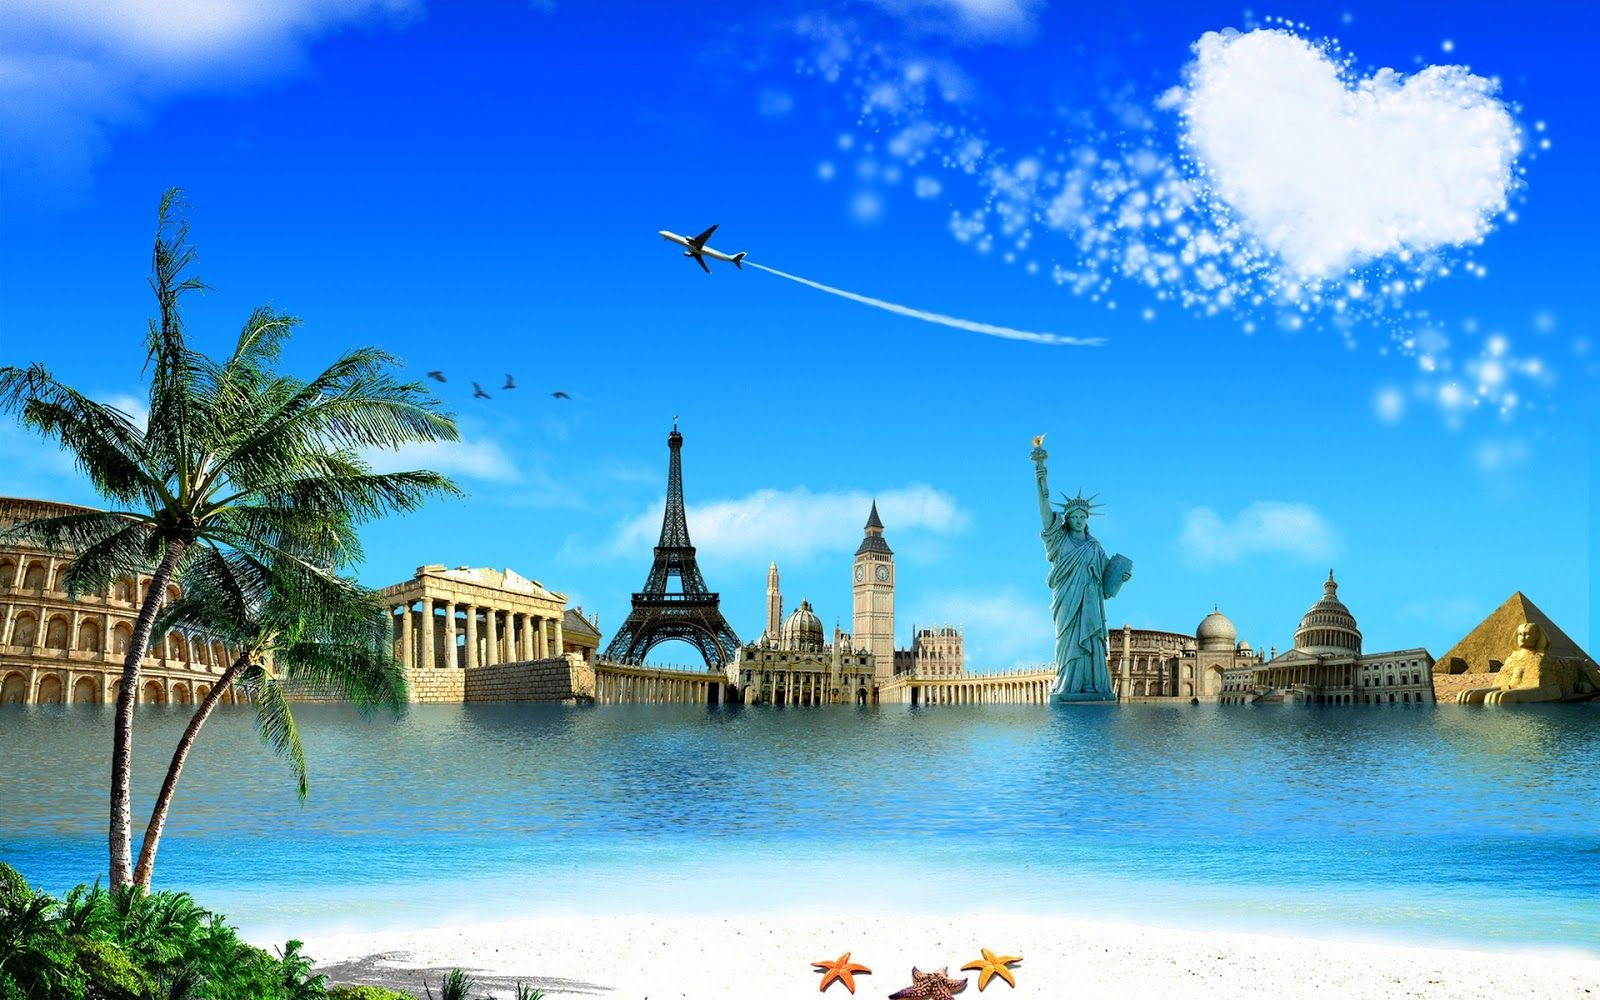 Wonders Of The World D Wallpaper Free 1600x1000 Wallpapers 49